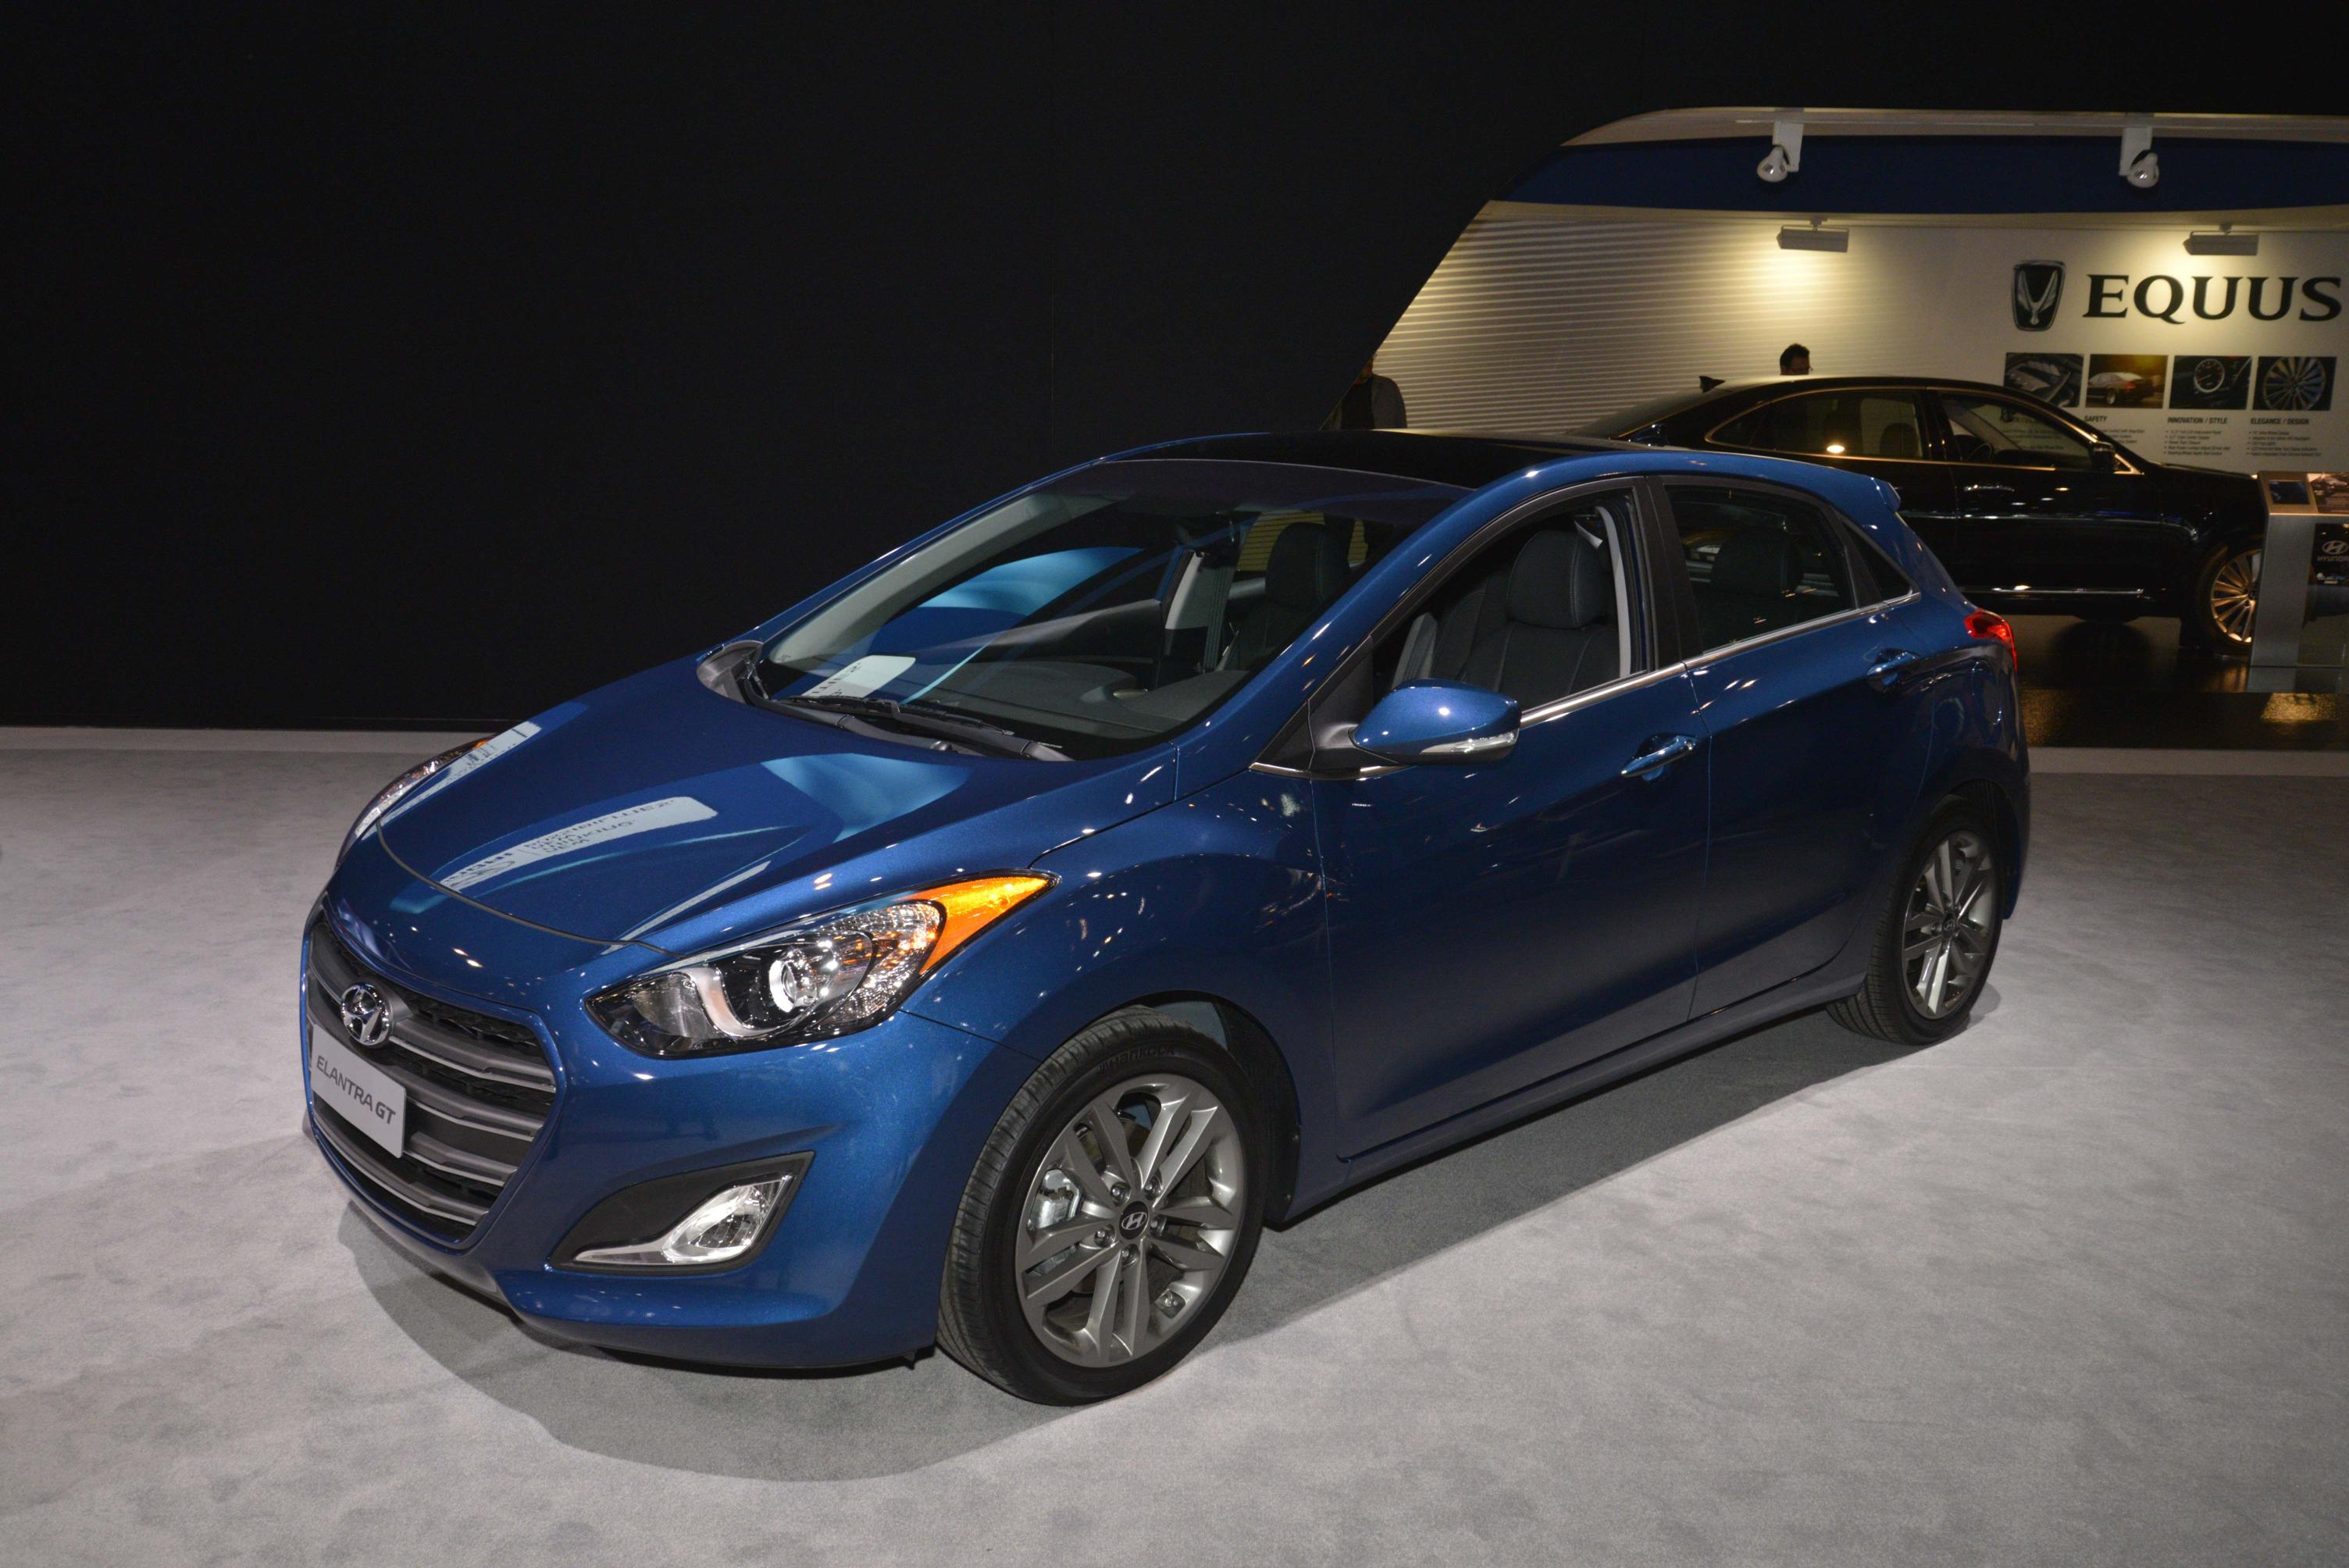 2016 HYUNDAI ELANTRA GT SPORTS REFRESHED LOOK AND NEW TECH